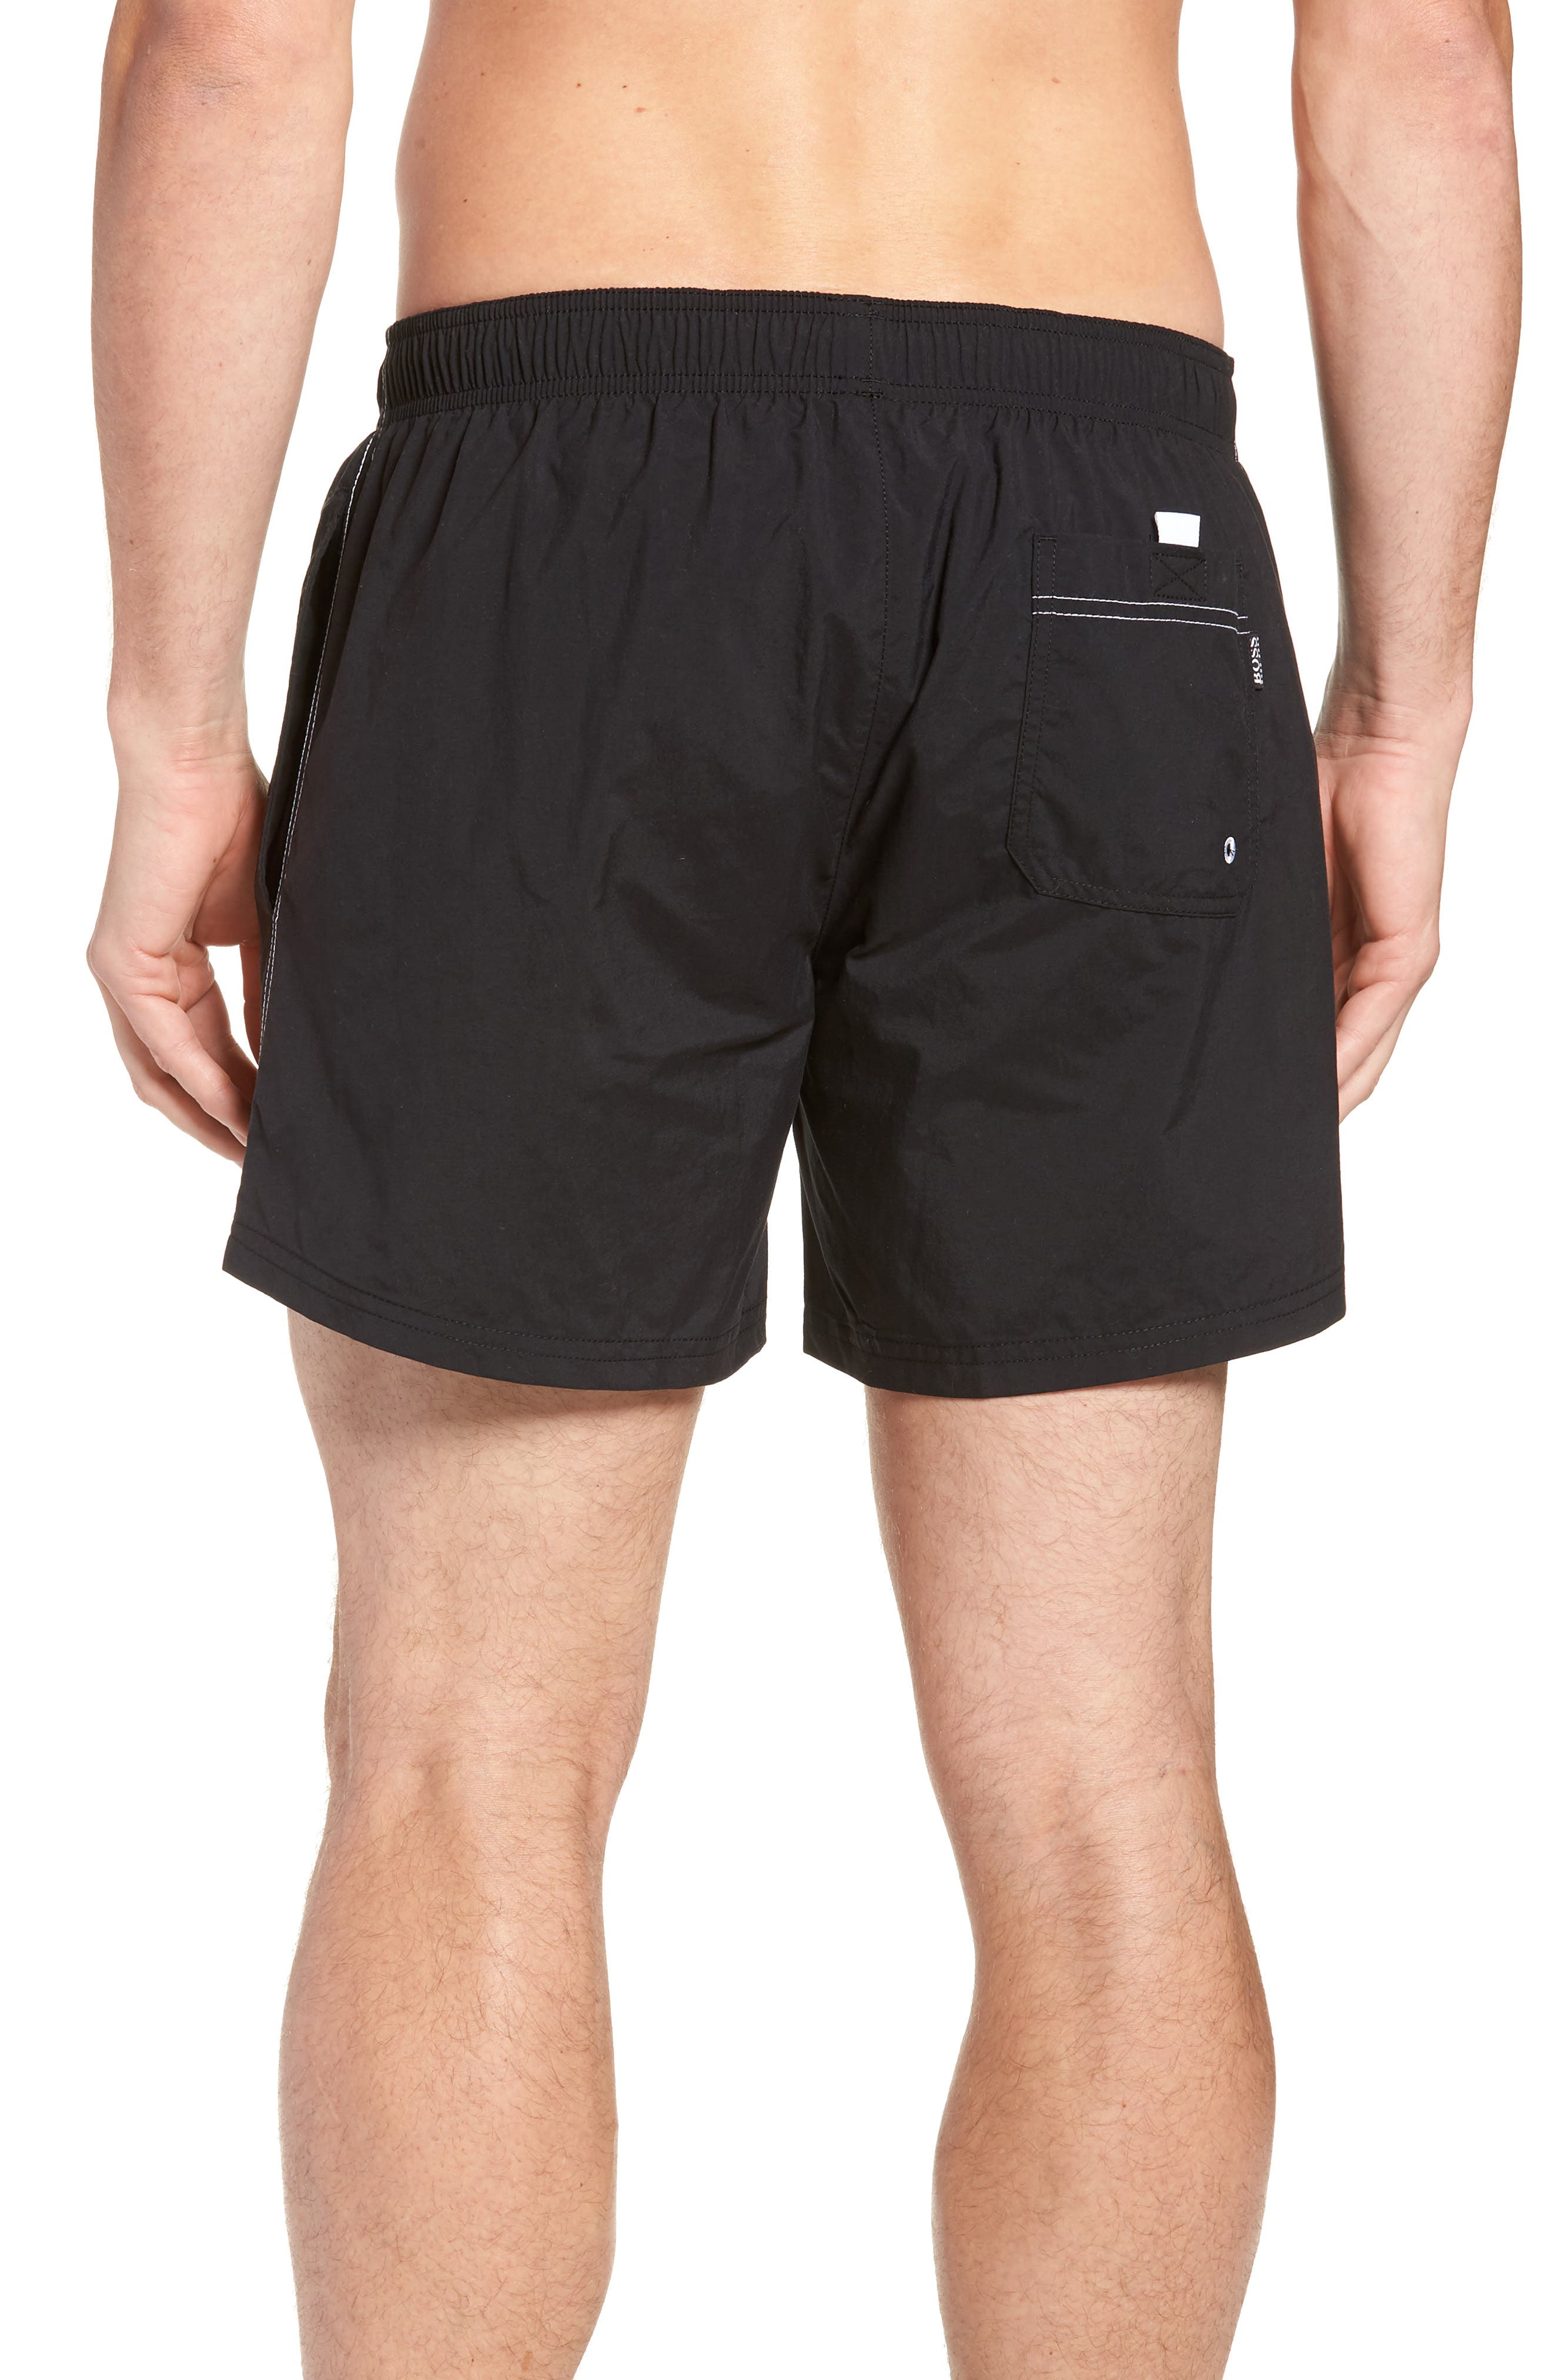 Perch Swim Trunks,                             Alternate thumbnail 2, color,                             001